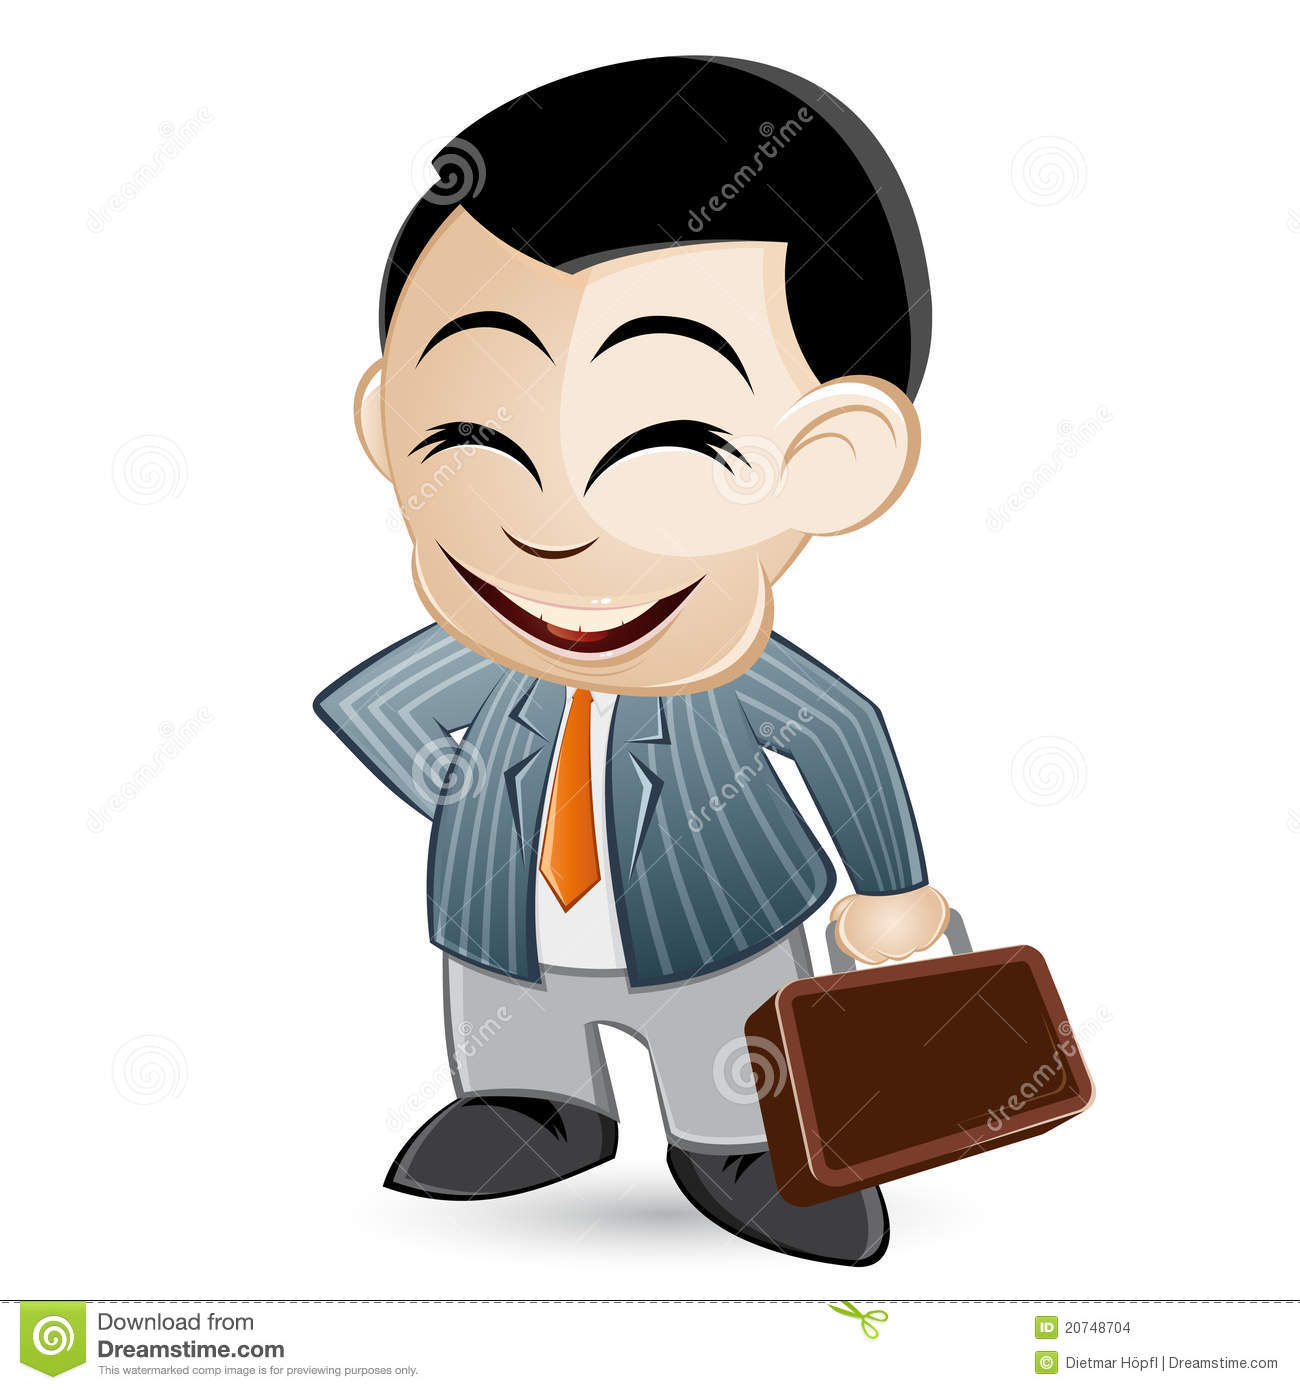 An illustration of a salesman or a business man with a briefcase. .